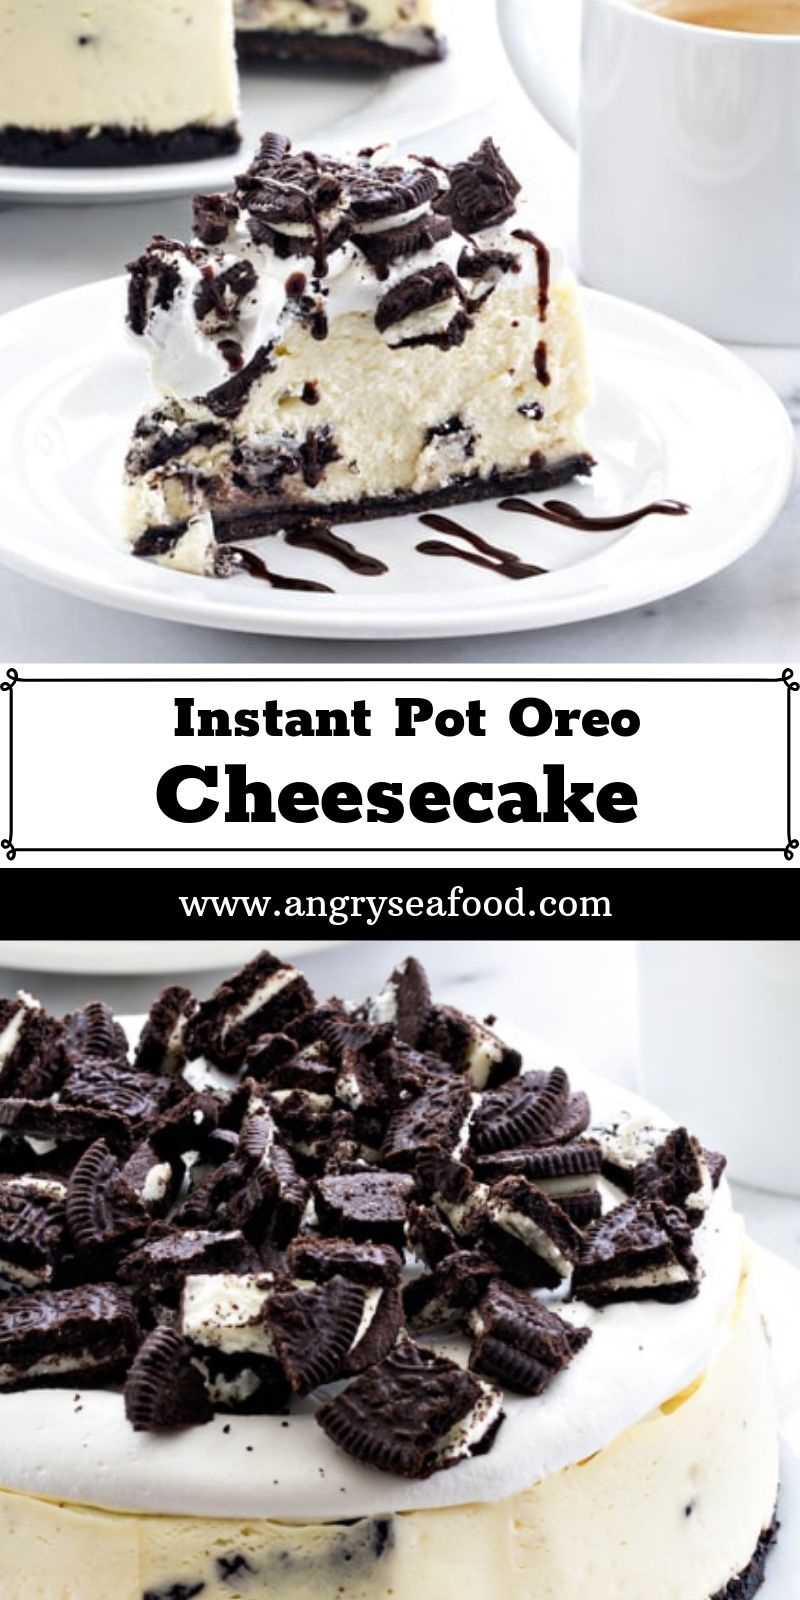 Instant Pot Oreo Cheesecake